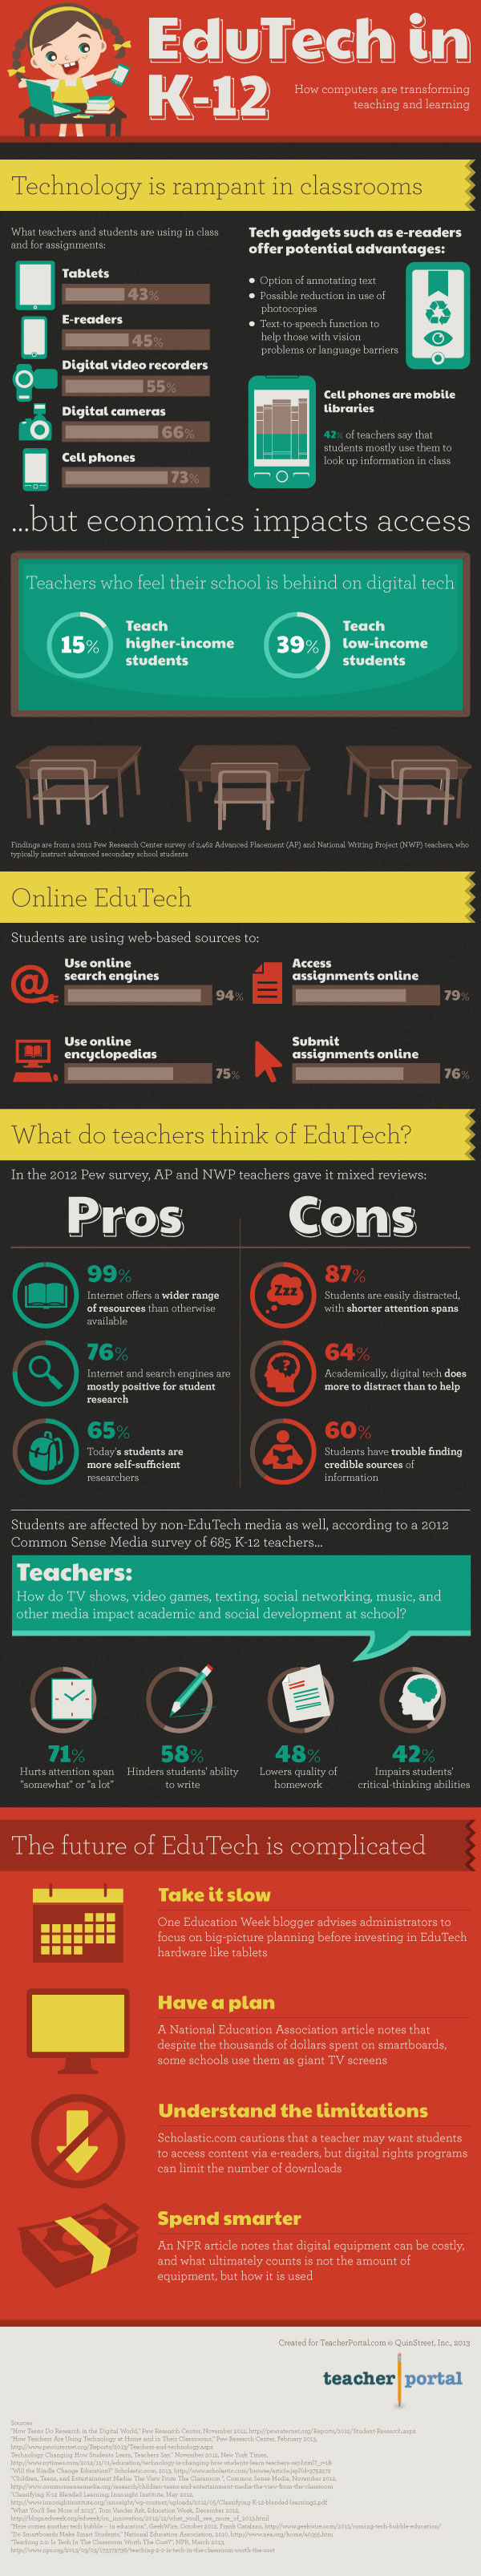 How-EdTech-Transforms-Teaching-and-Learning-Infographic